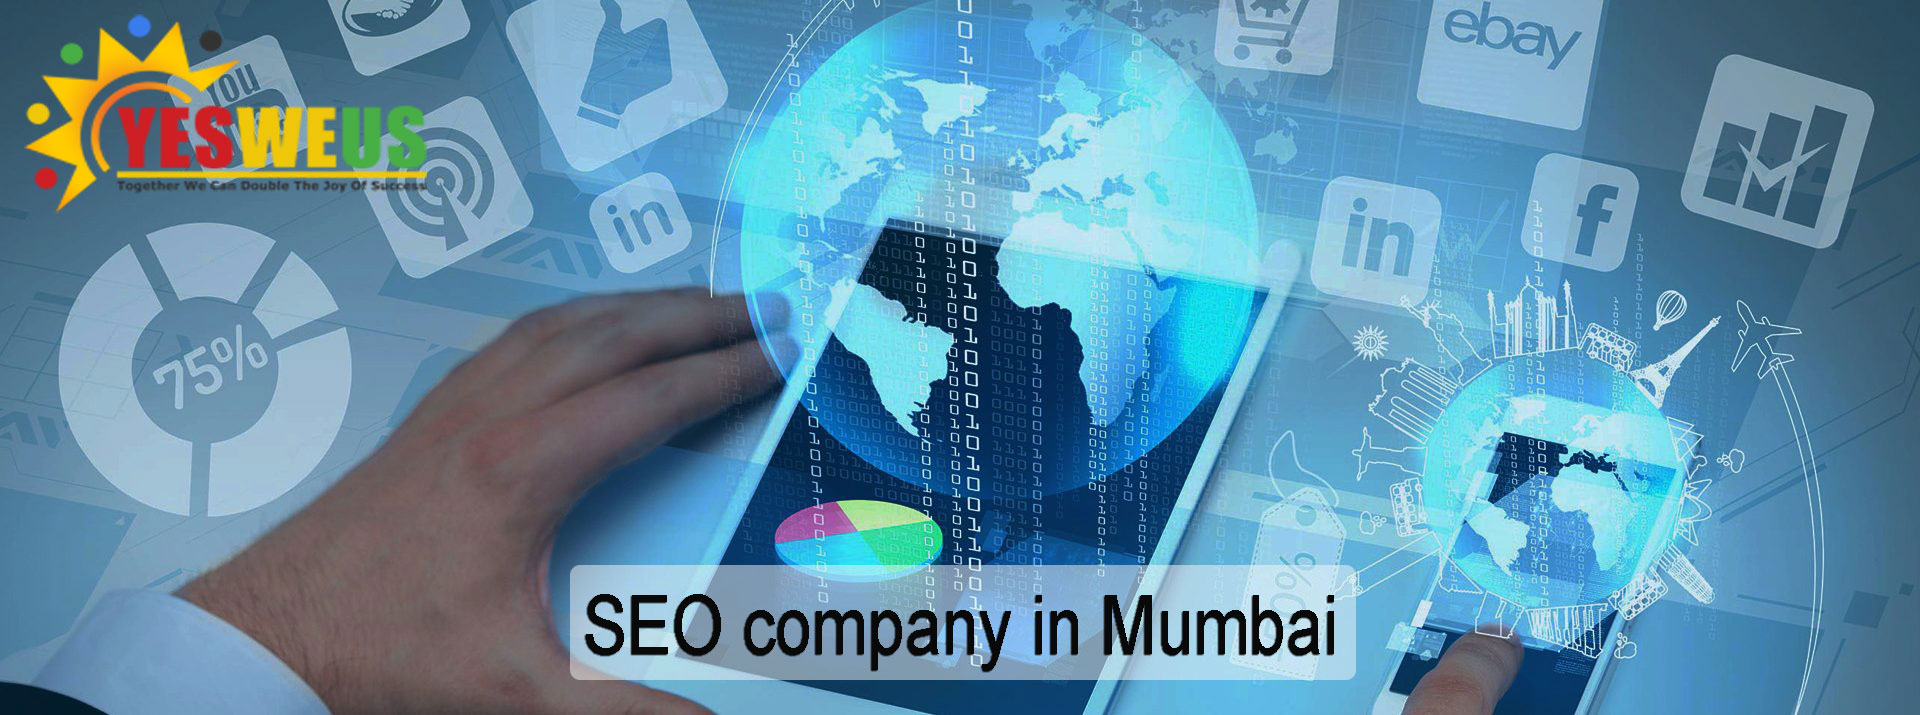 www.yesweus.in Most Popular SEO Company in Mumbai